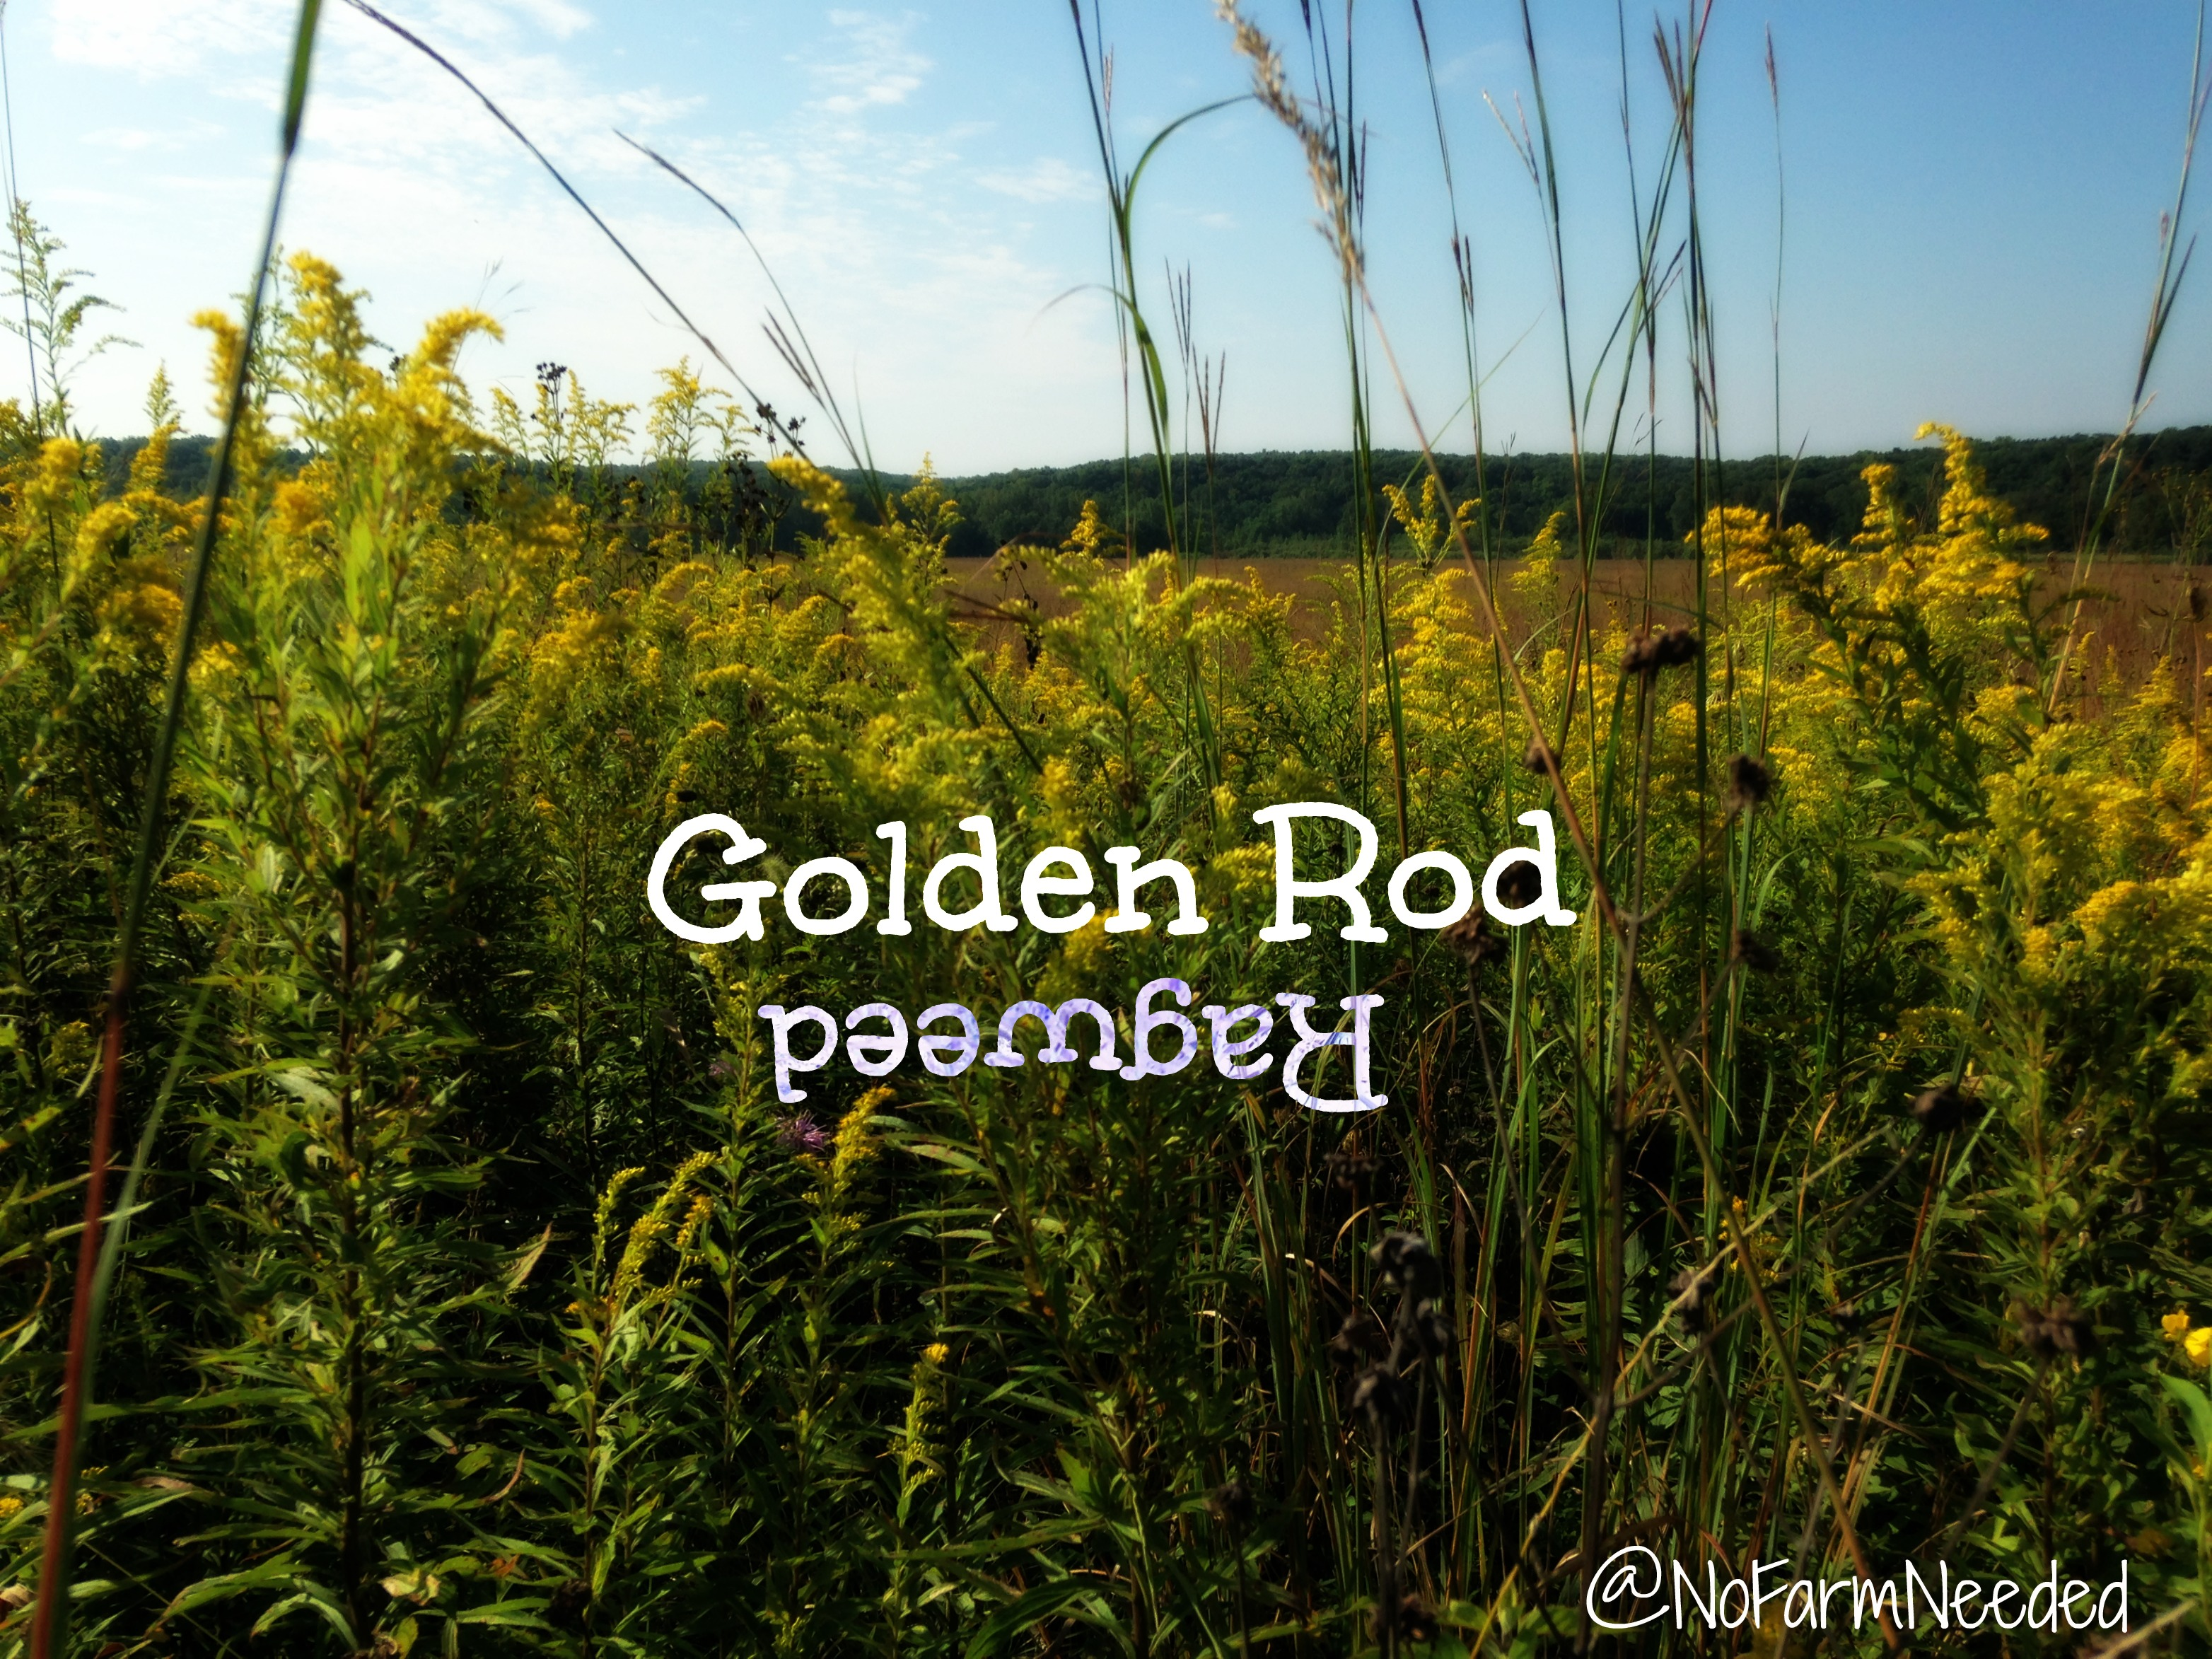 Golden Rod vs Ragweed @NoFarmNeeded